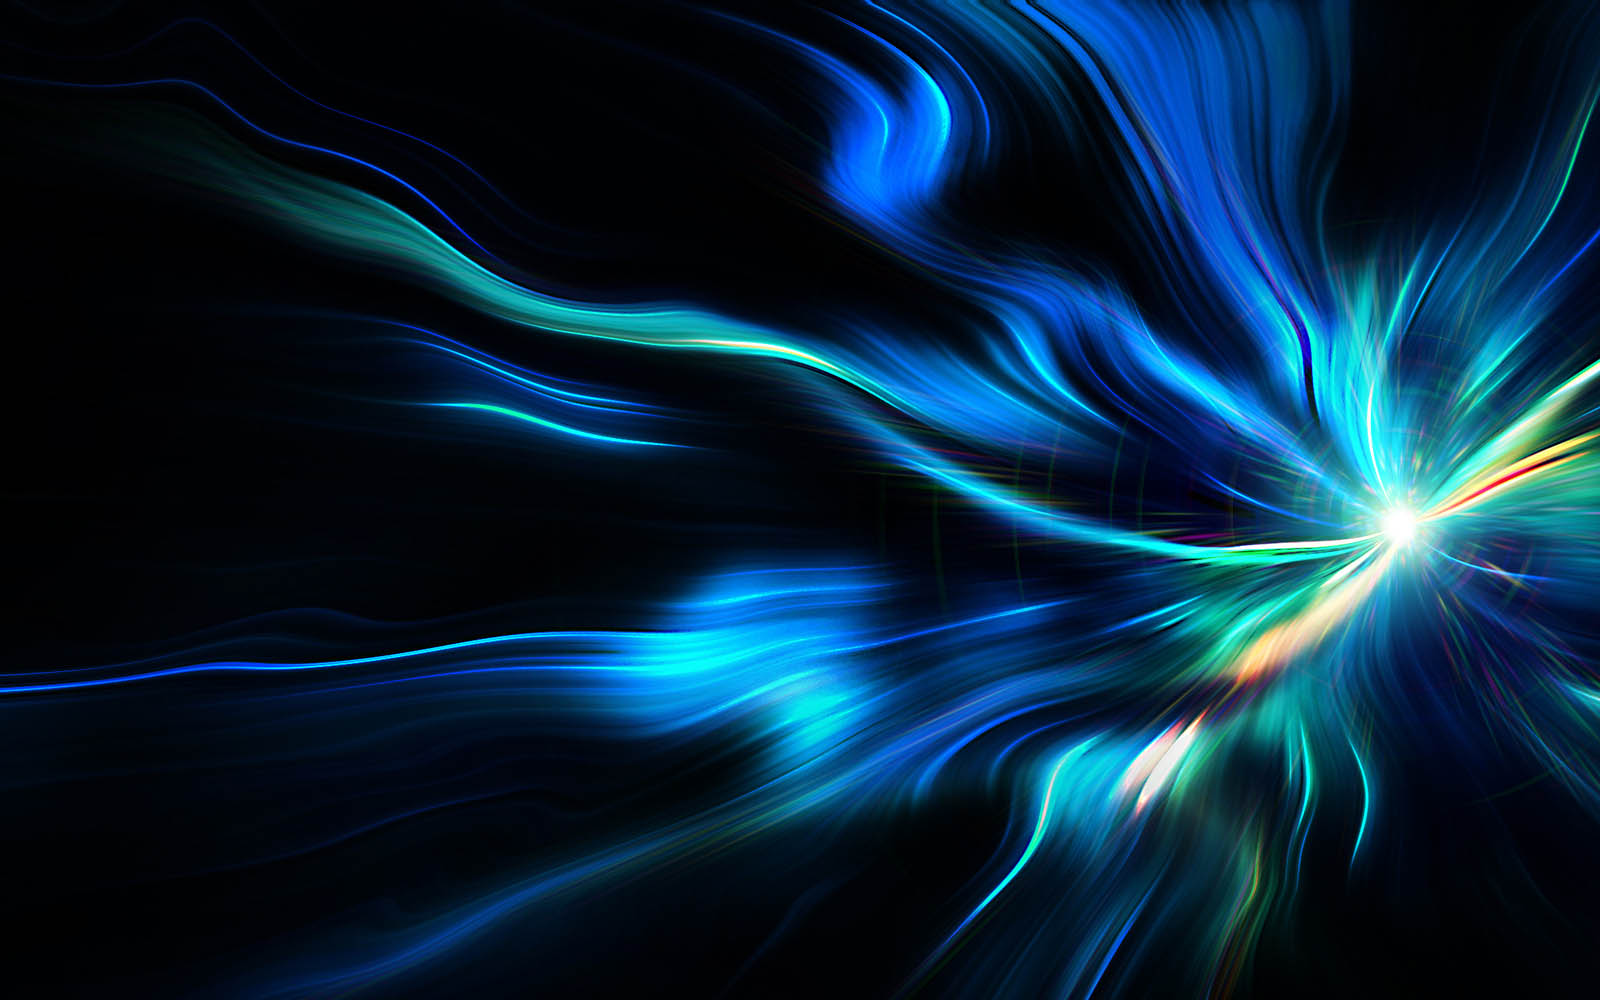 shining 3d wallpapers shining 3d desktop wallpapers shining 3d desktop    Wallpapers For Desktop 3d